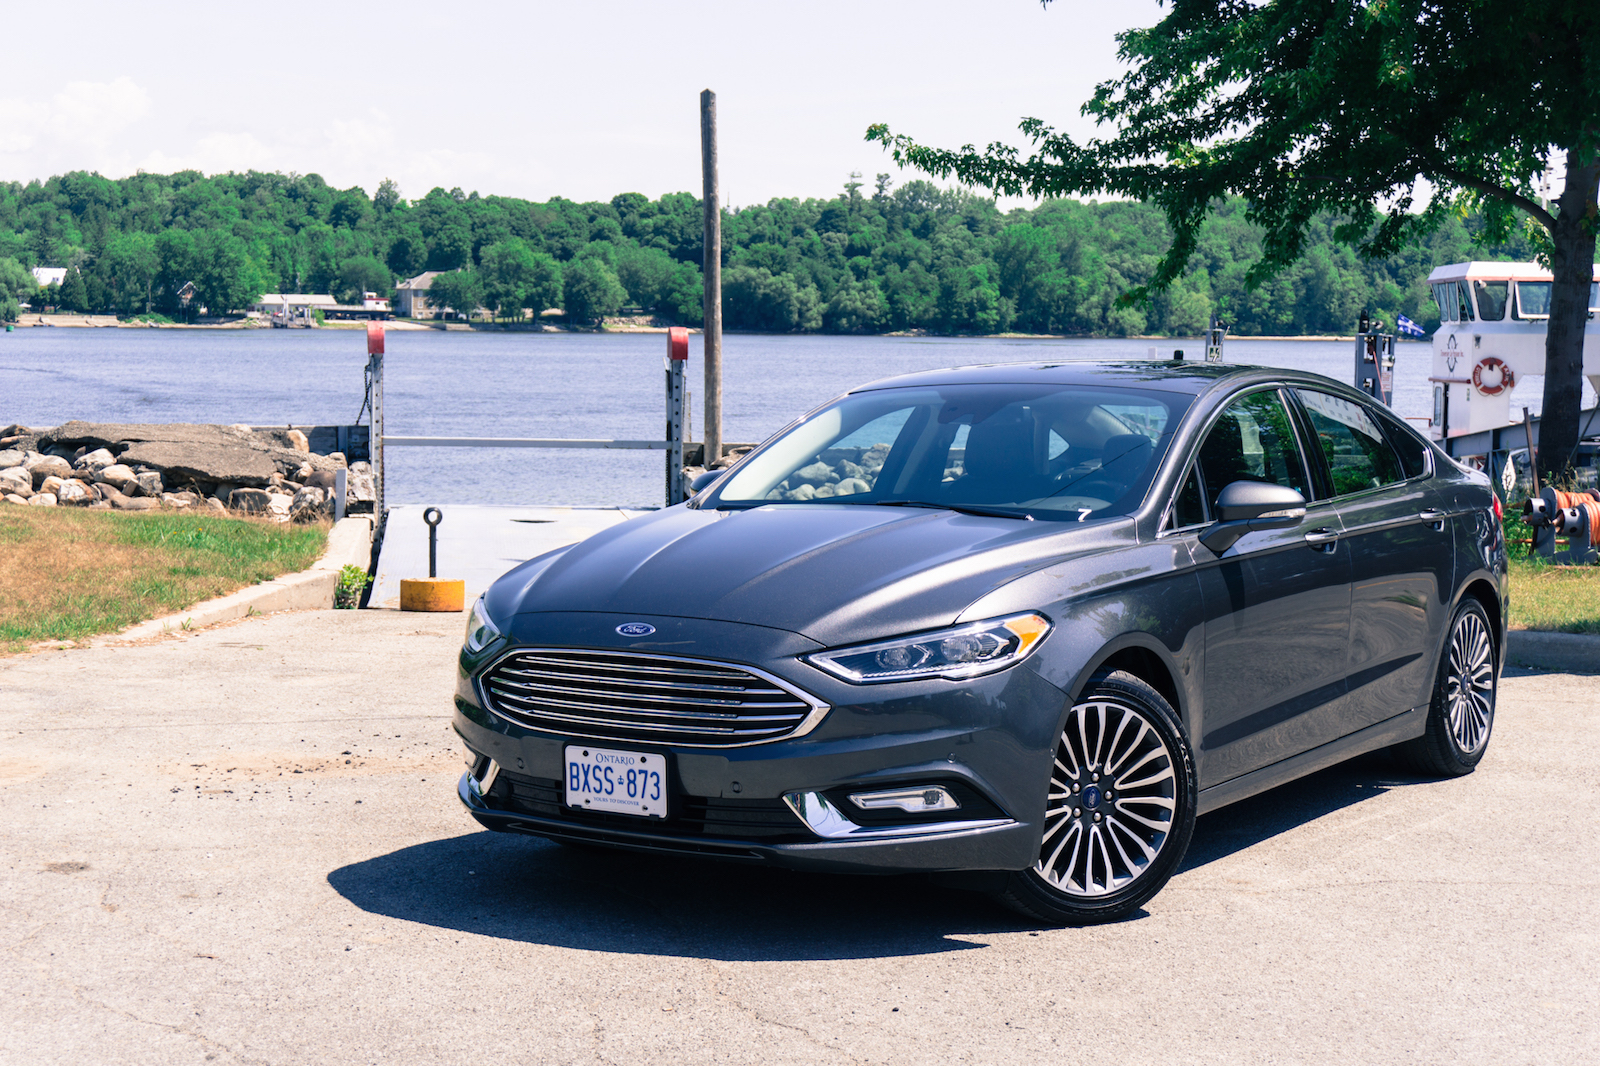 Ford Fusion Trunk Space >> First Drive: 2017 Ford Fusion | Canadian Auto Review